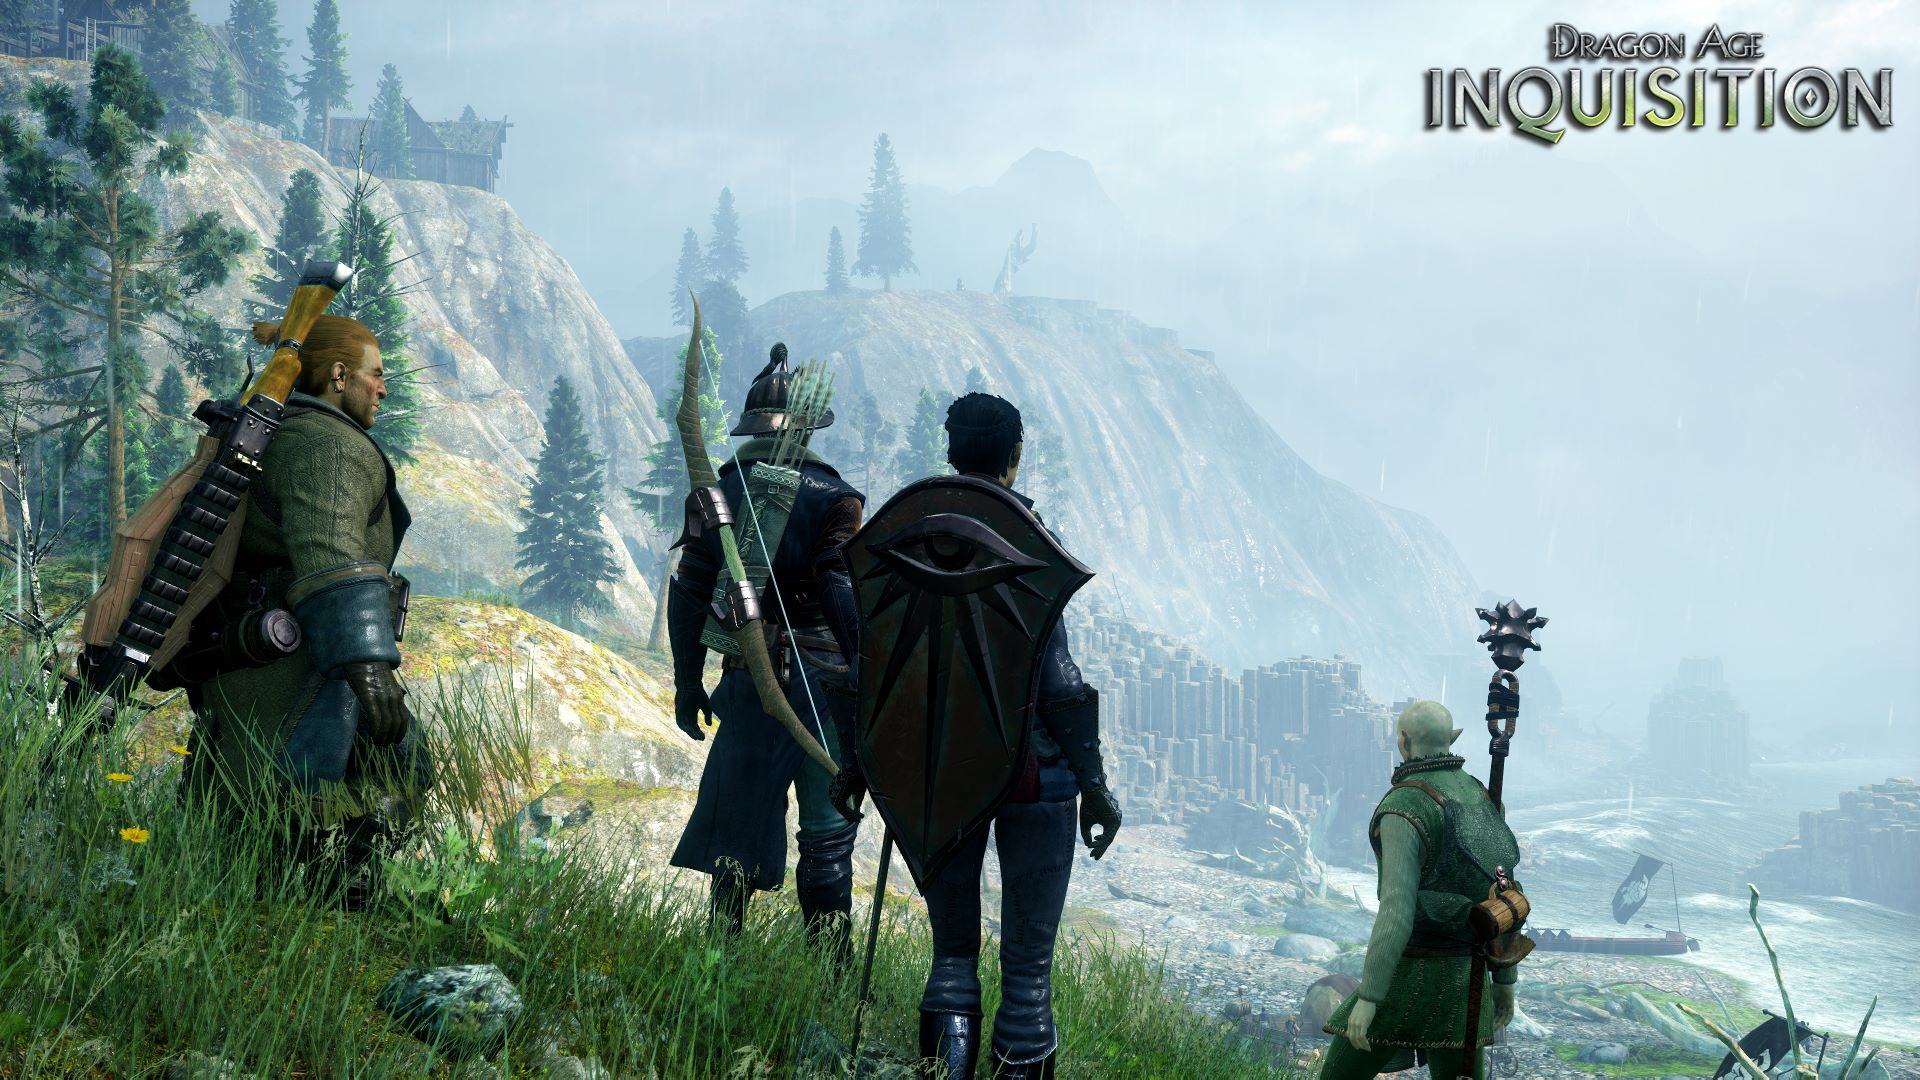 Dragon Age Inquisition Wallpaper 1920x1080 Labzada